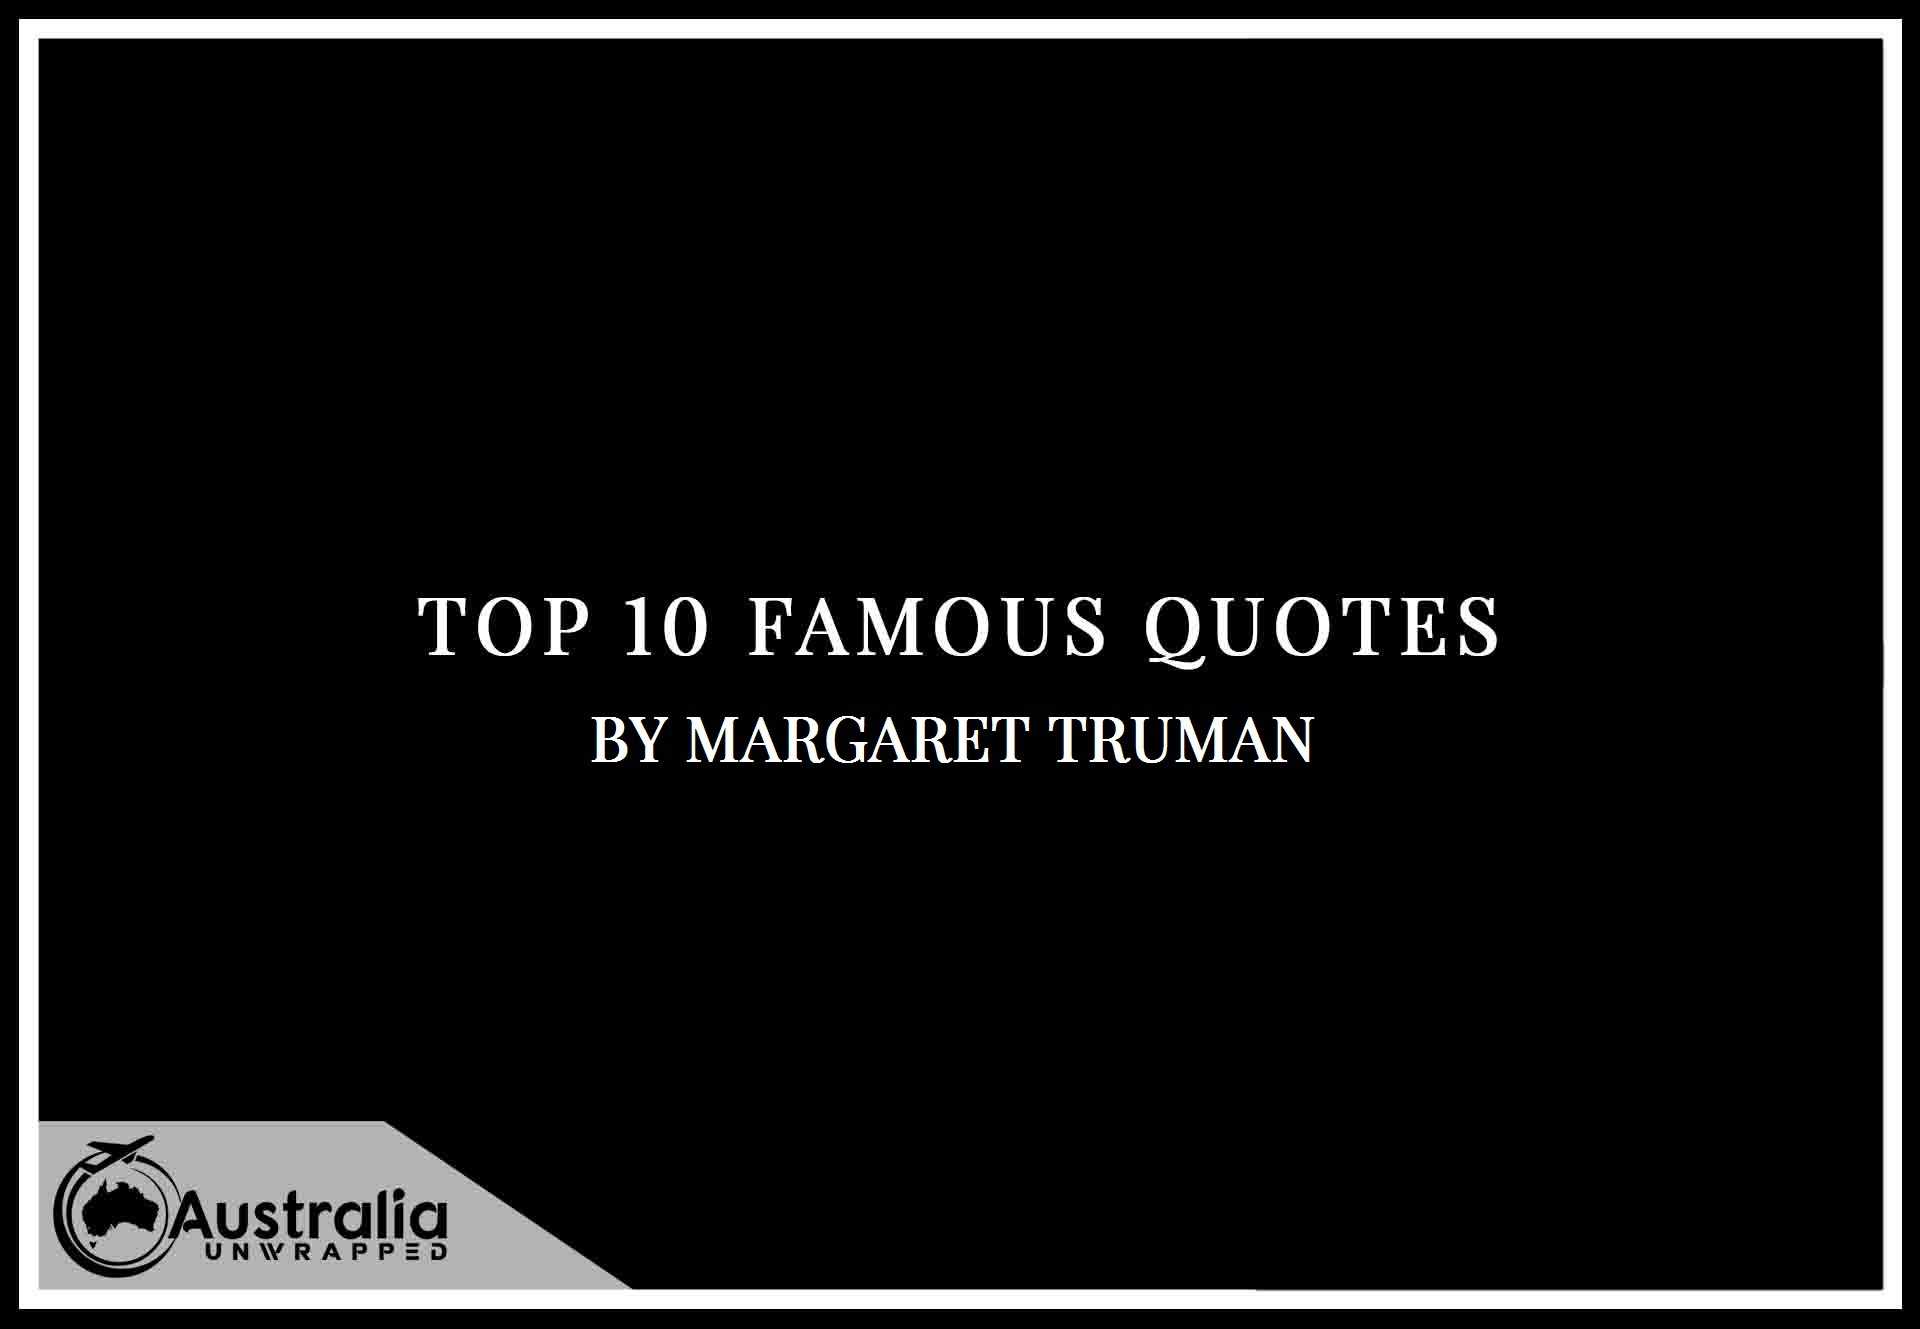 Margaret Truman's Top 10 Popular and Famous Quotes